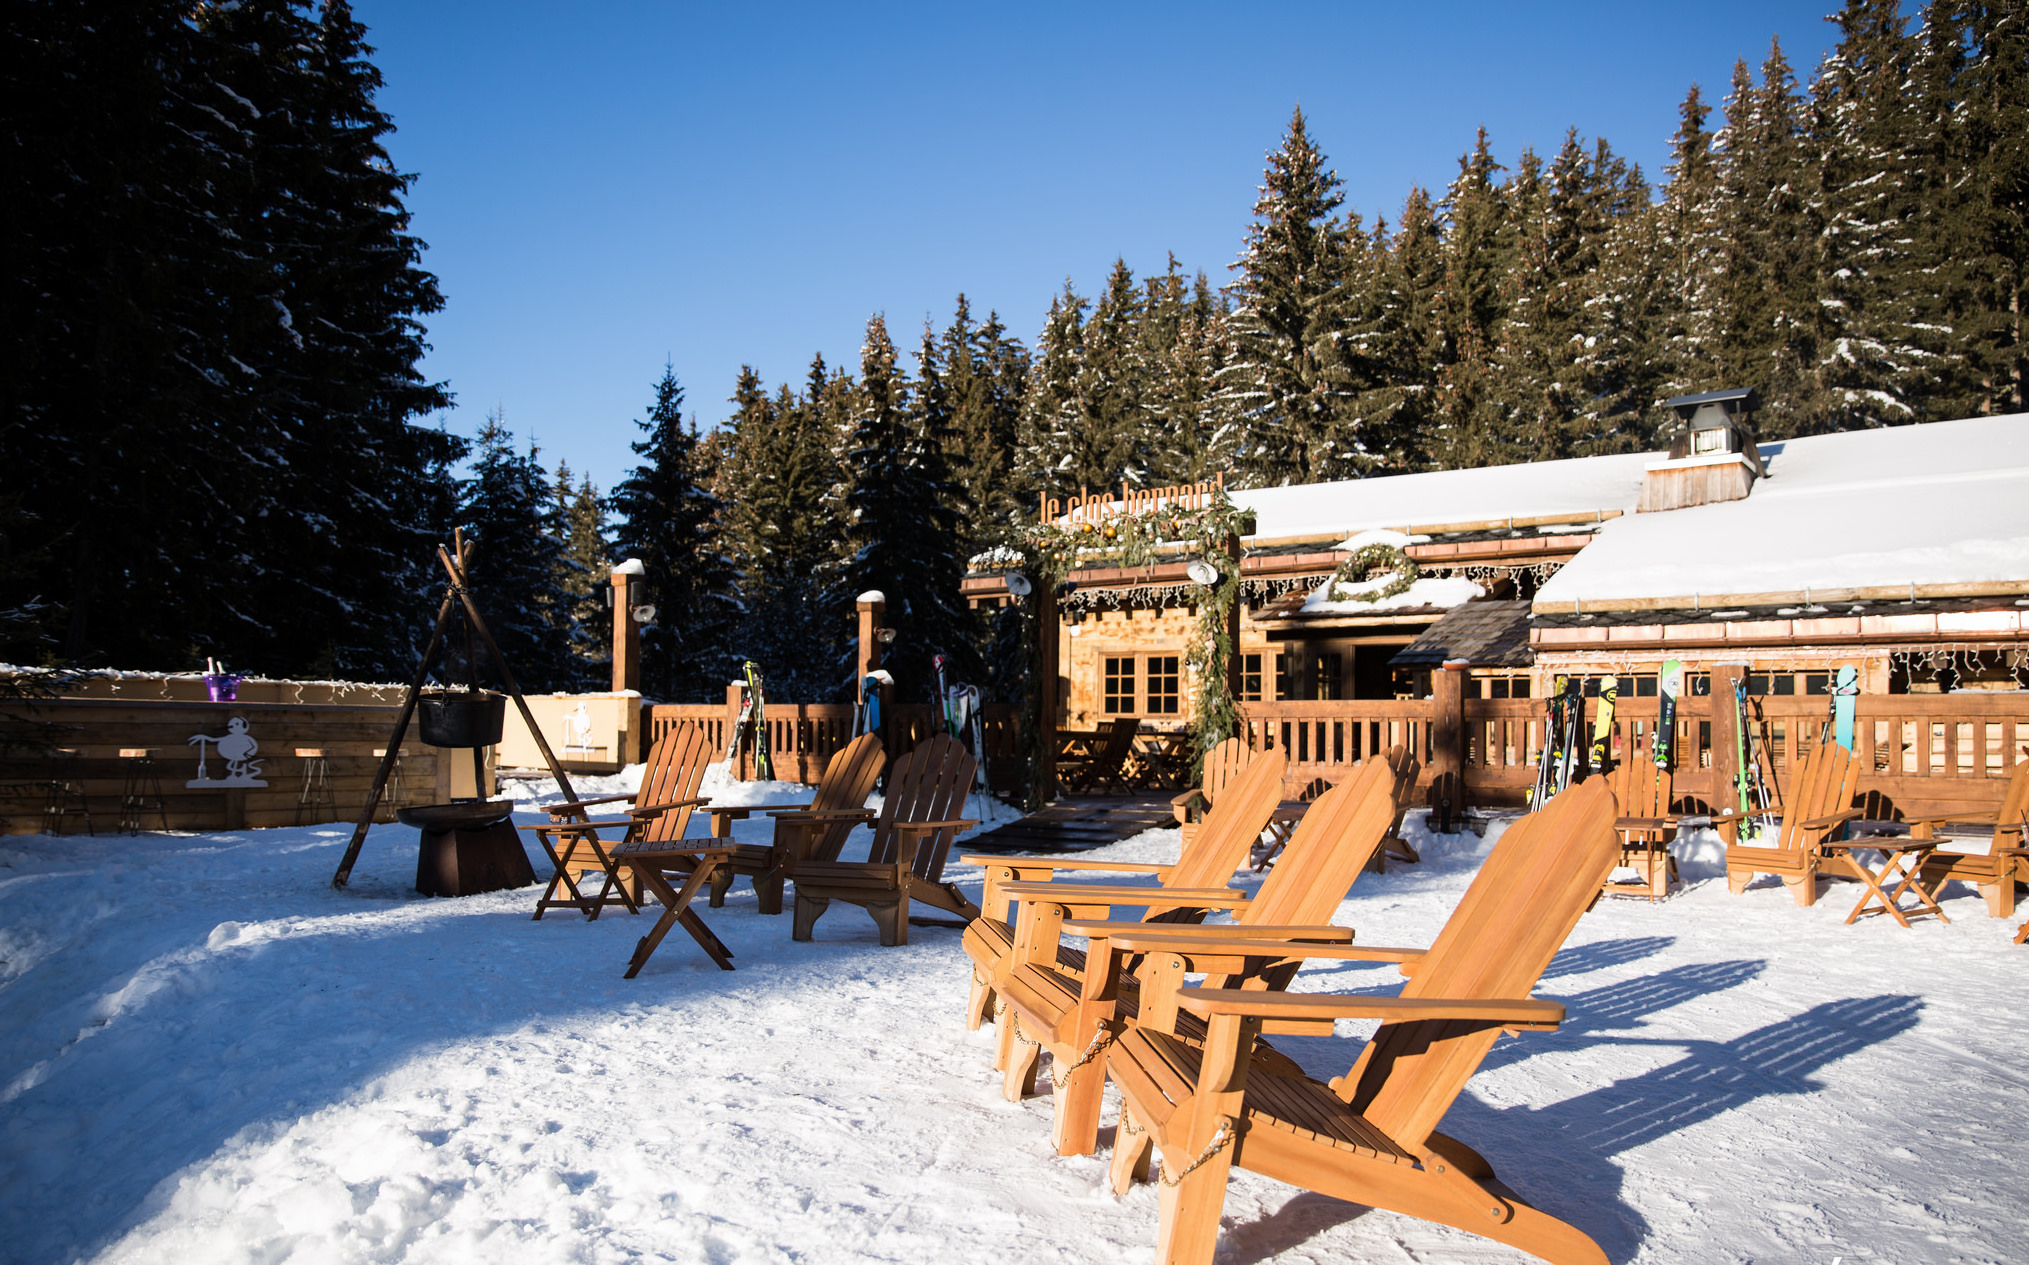 Chalet Le Lapin Blanc Meribel restaurants in the three valleys ski resort - fish&pips